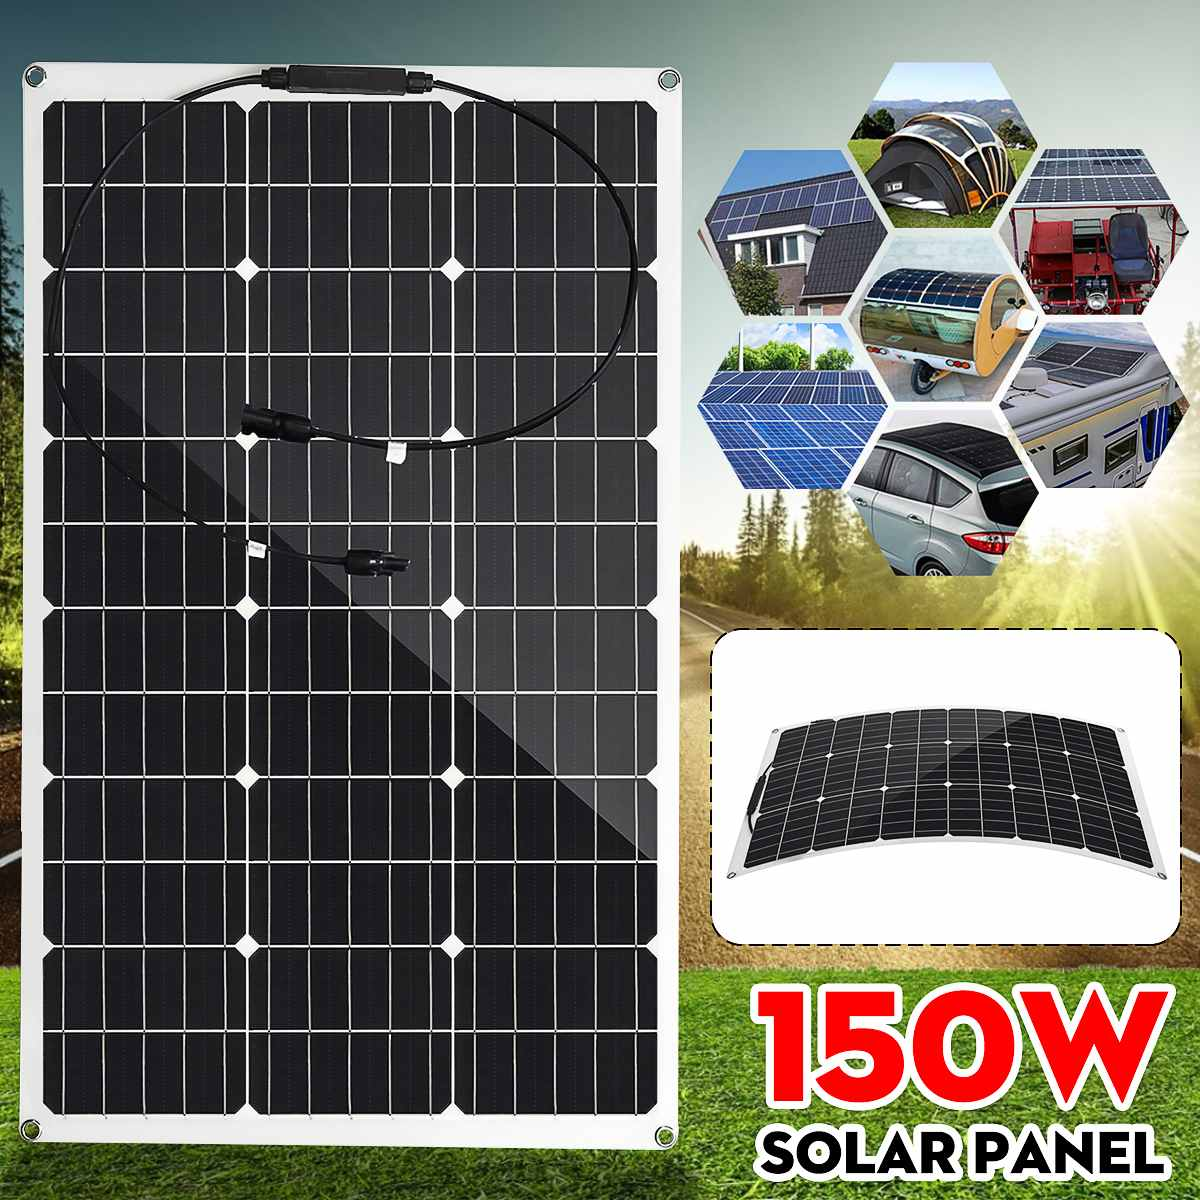 150W Semi-flexible Solar Panel 18V Monocrystalline Solar Cell DIY Module Cable Outdoor Connector Battery Charger Waterproof image